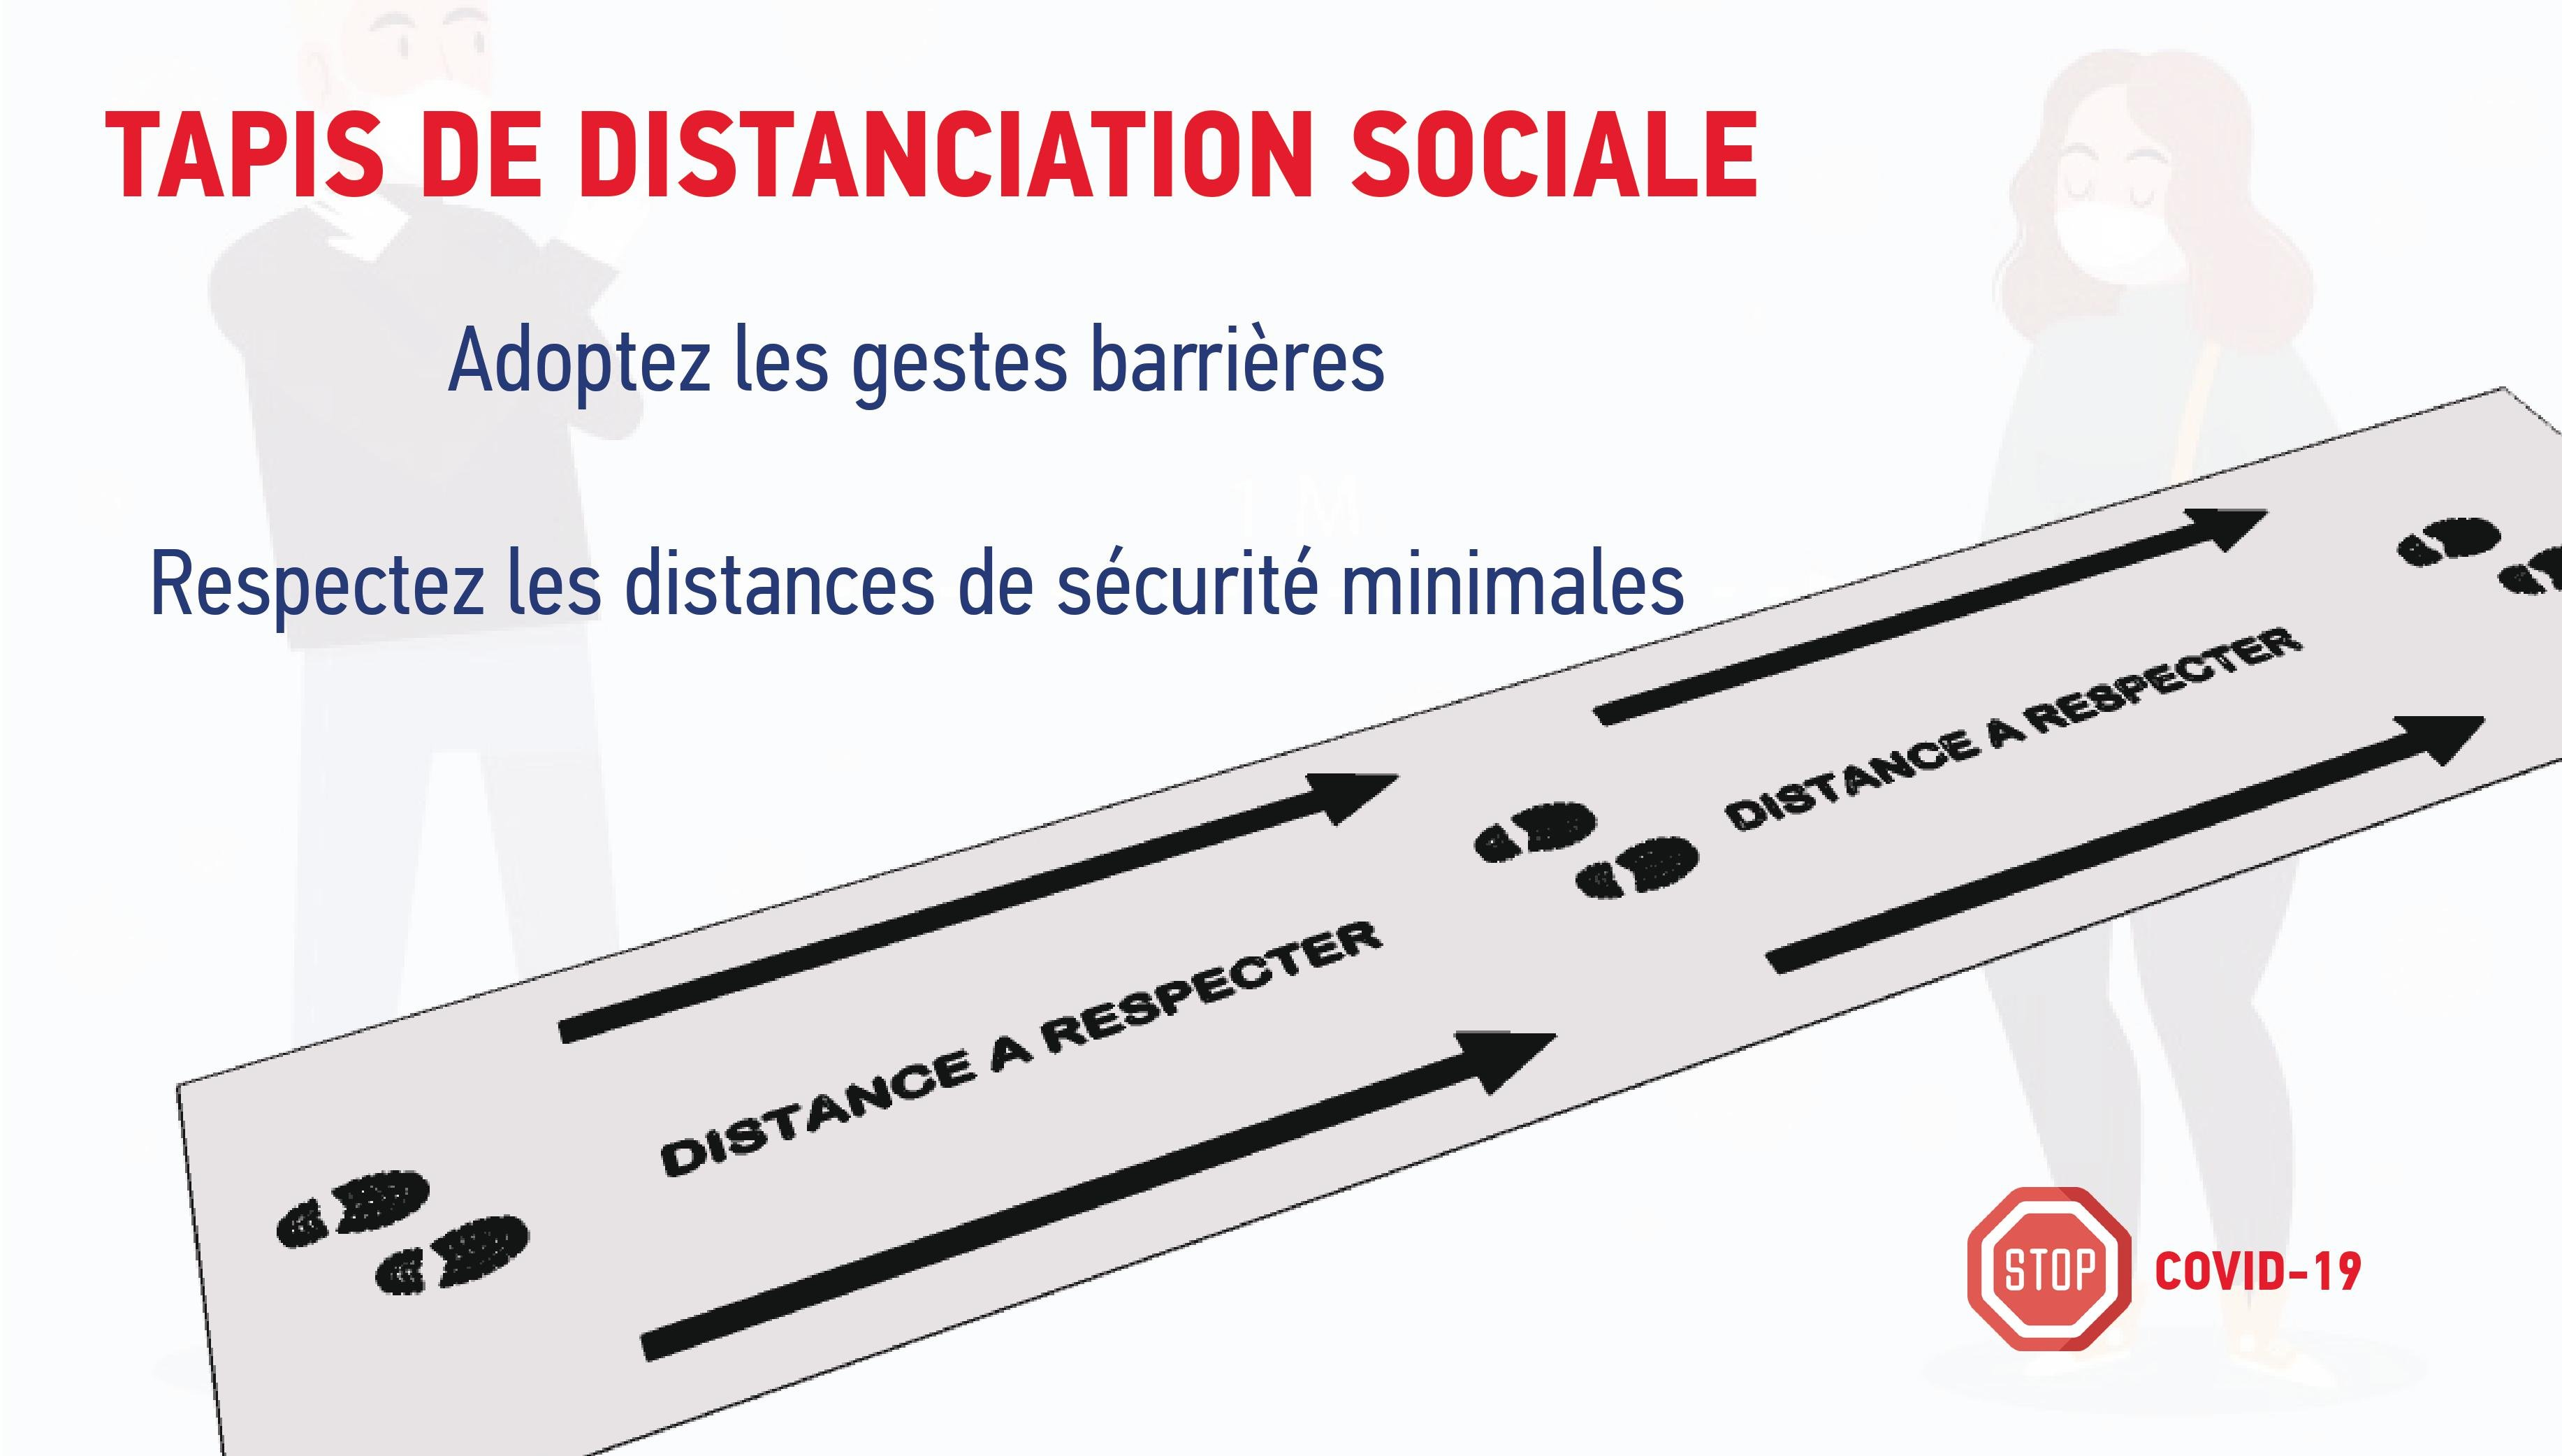 tapis de distanciation sociale